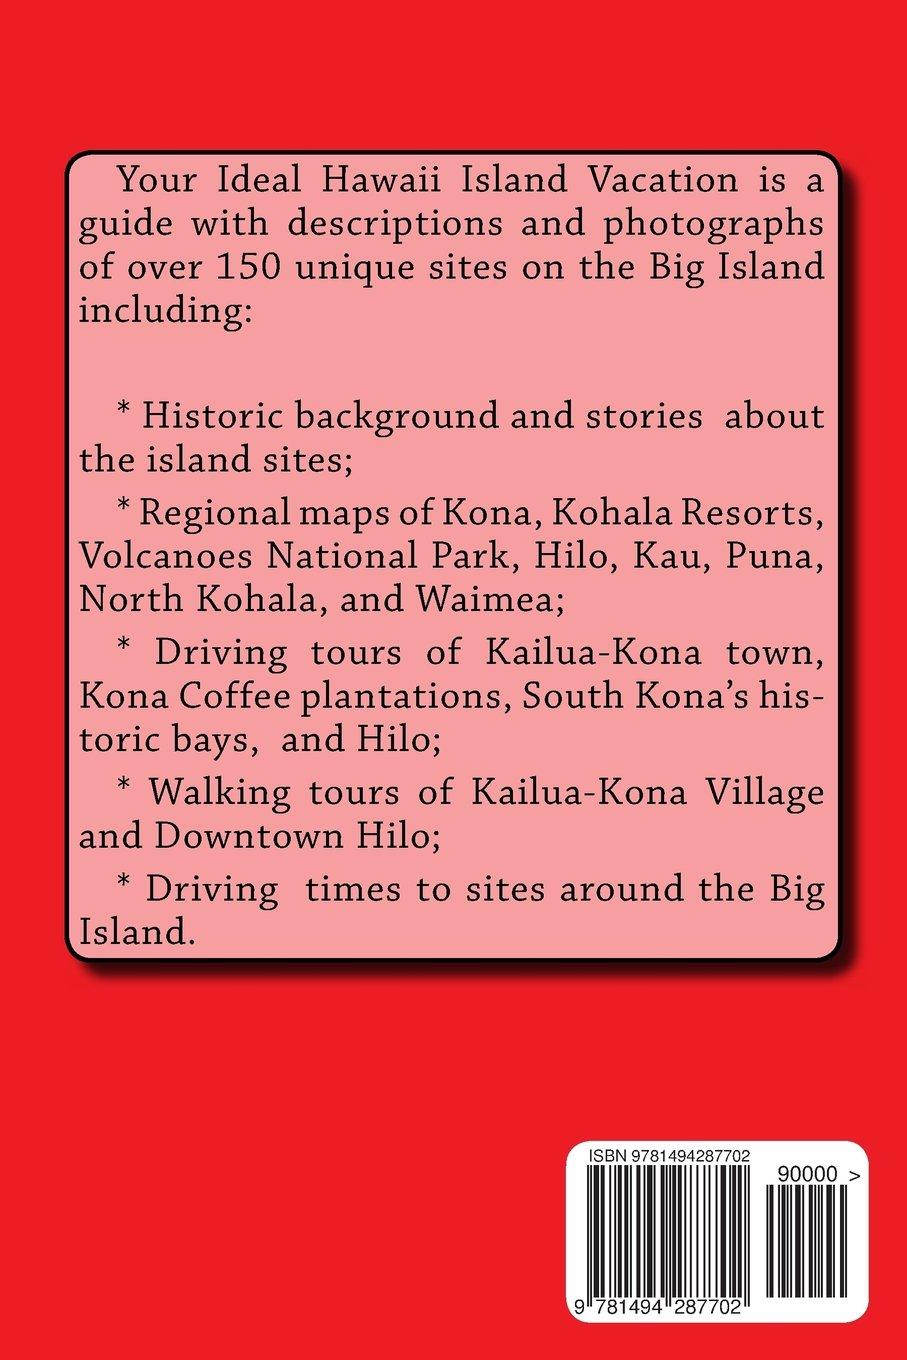 Your Ideal Hawaii Island Vacation A Guide for Visiting the Big